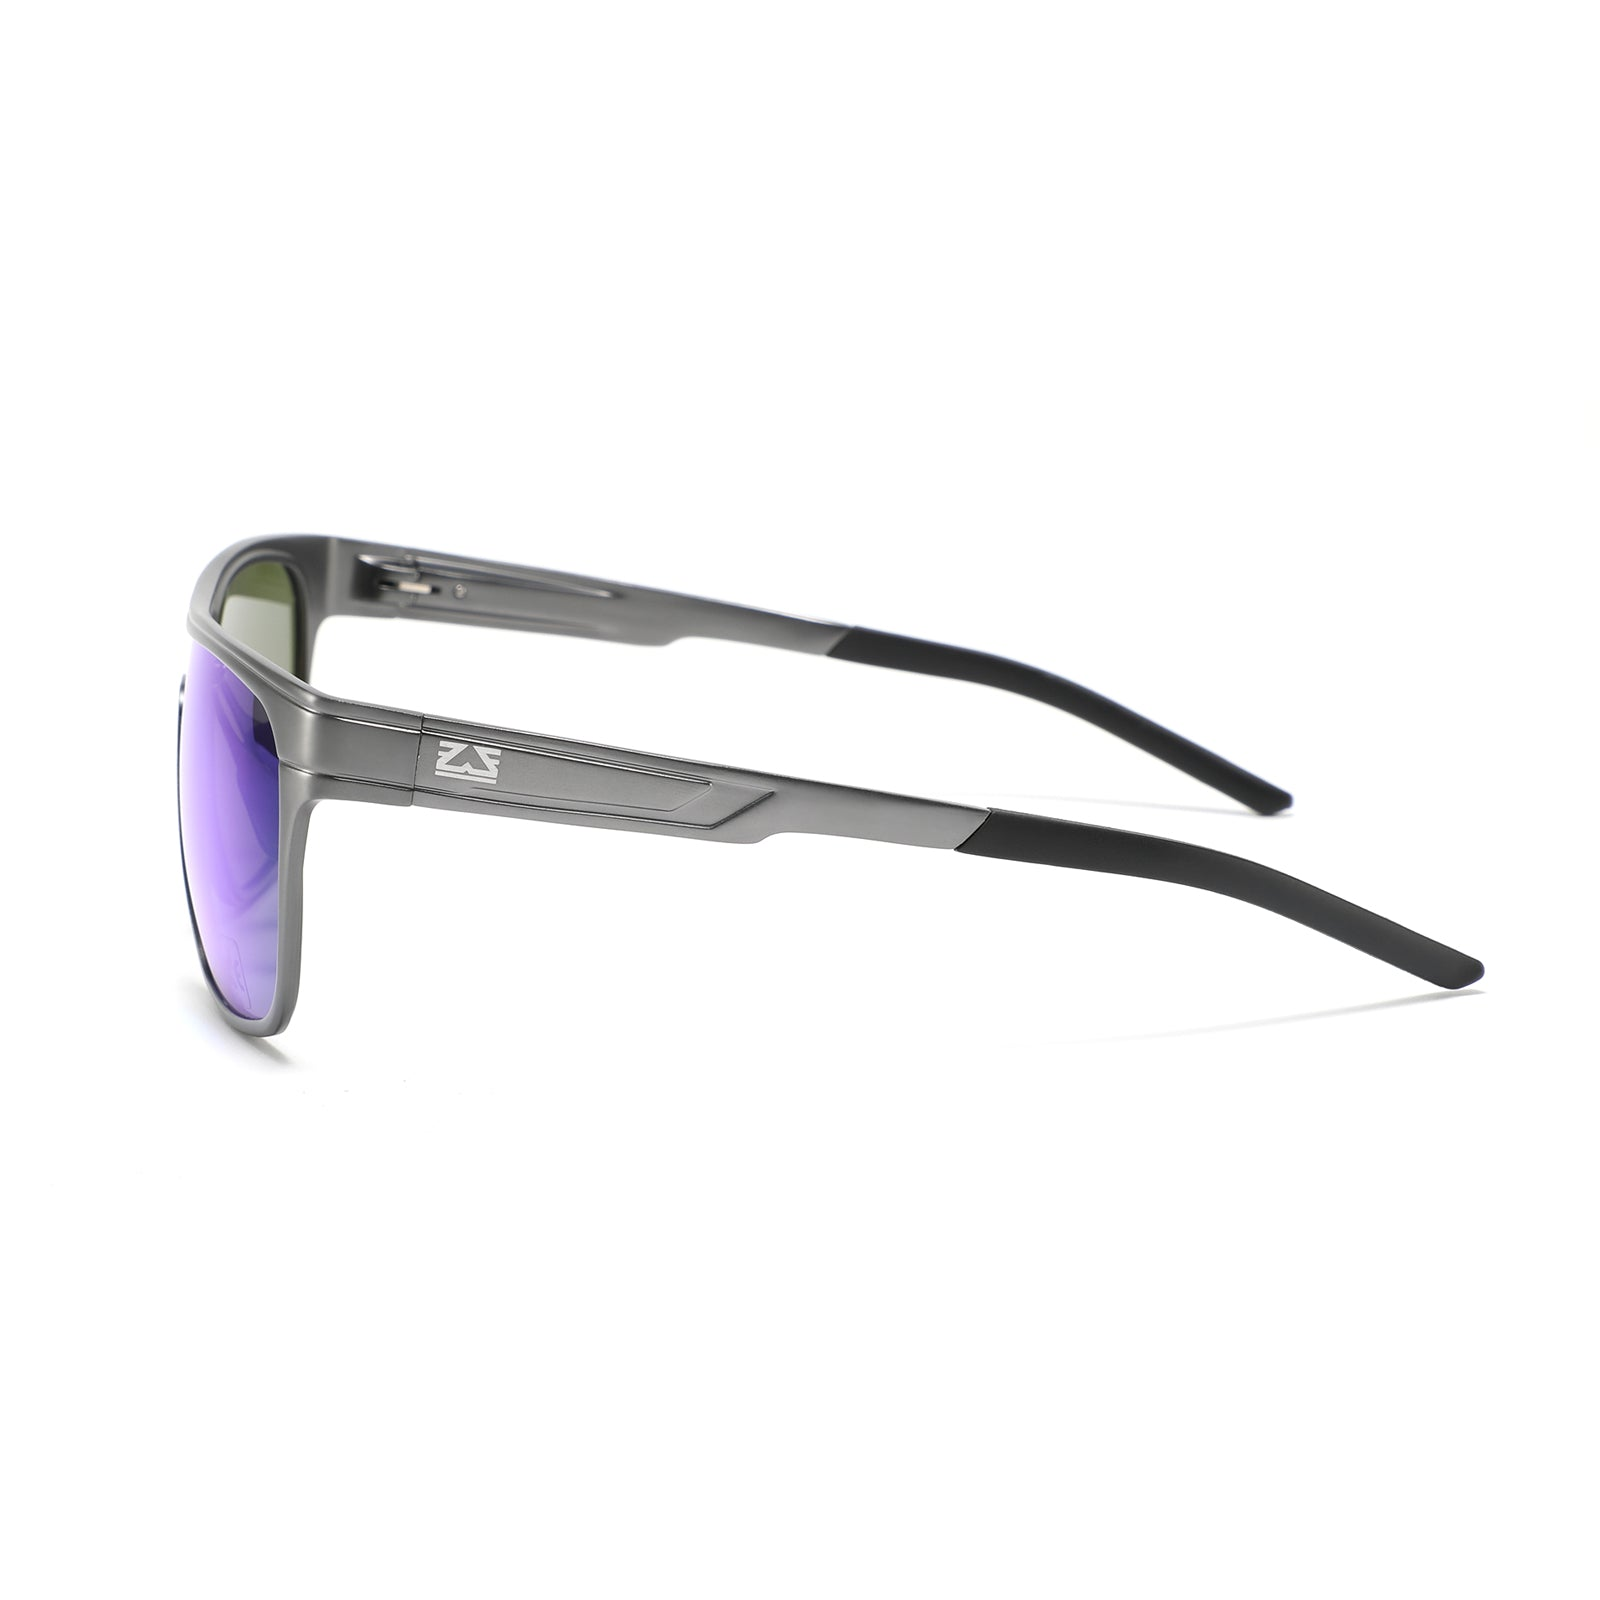 HOBE SUNGLASSES - Whieldon Fly Fishing